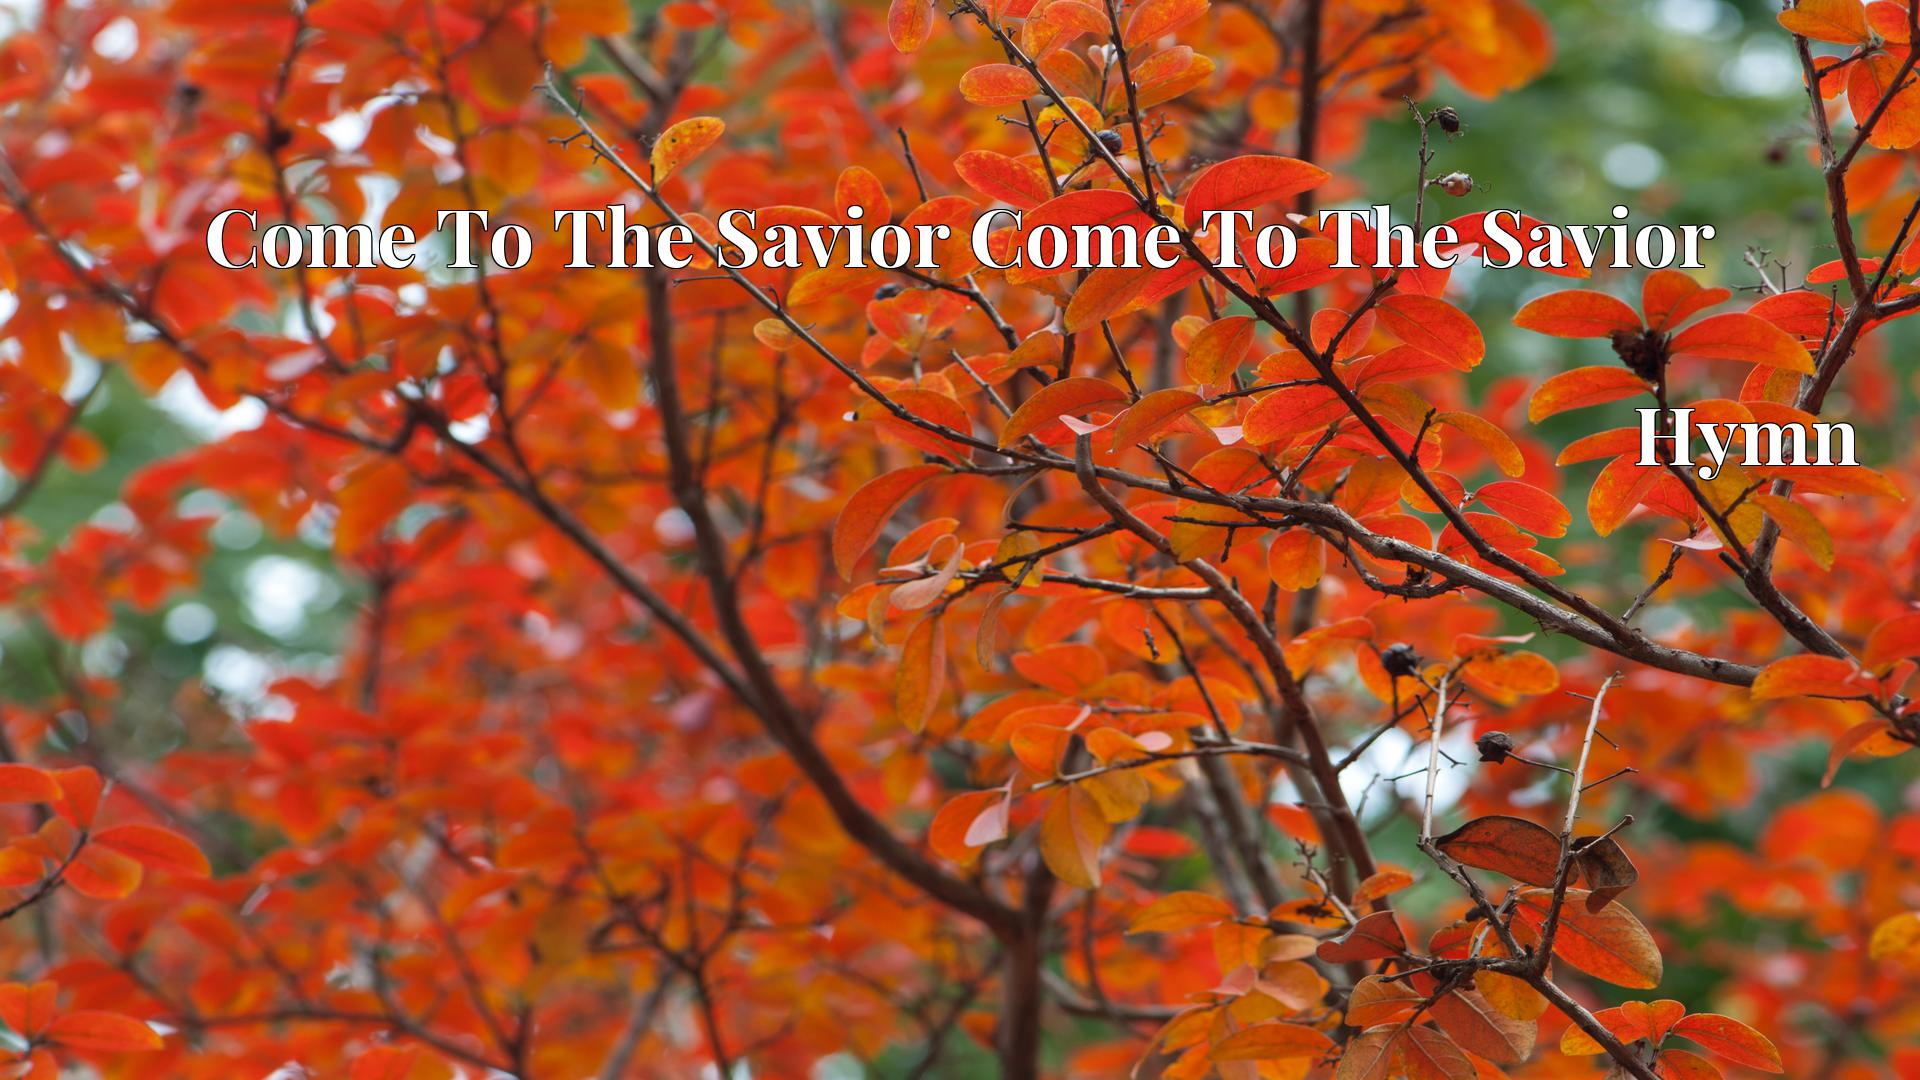 Come To The Savior Come To The Savior - Hymn